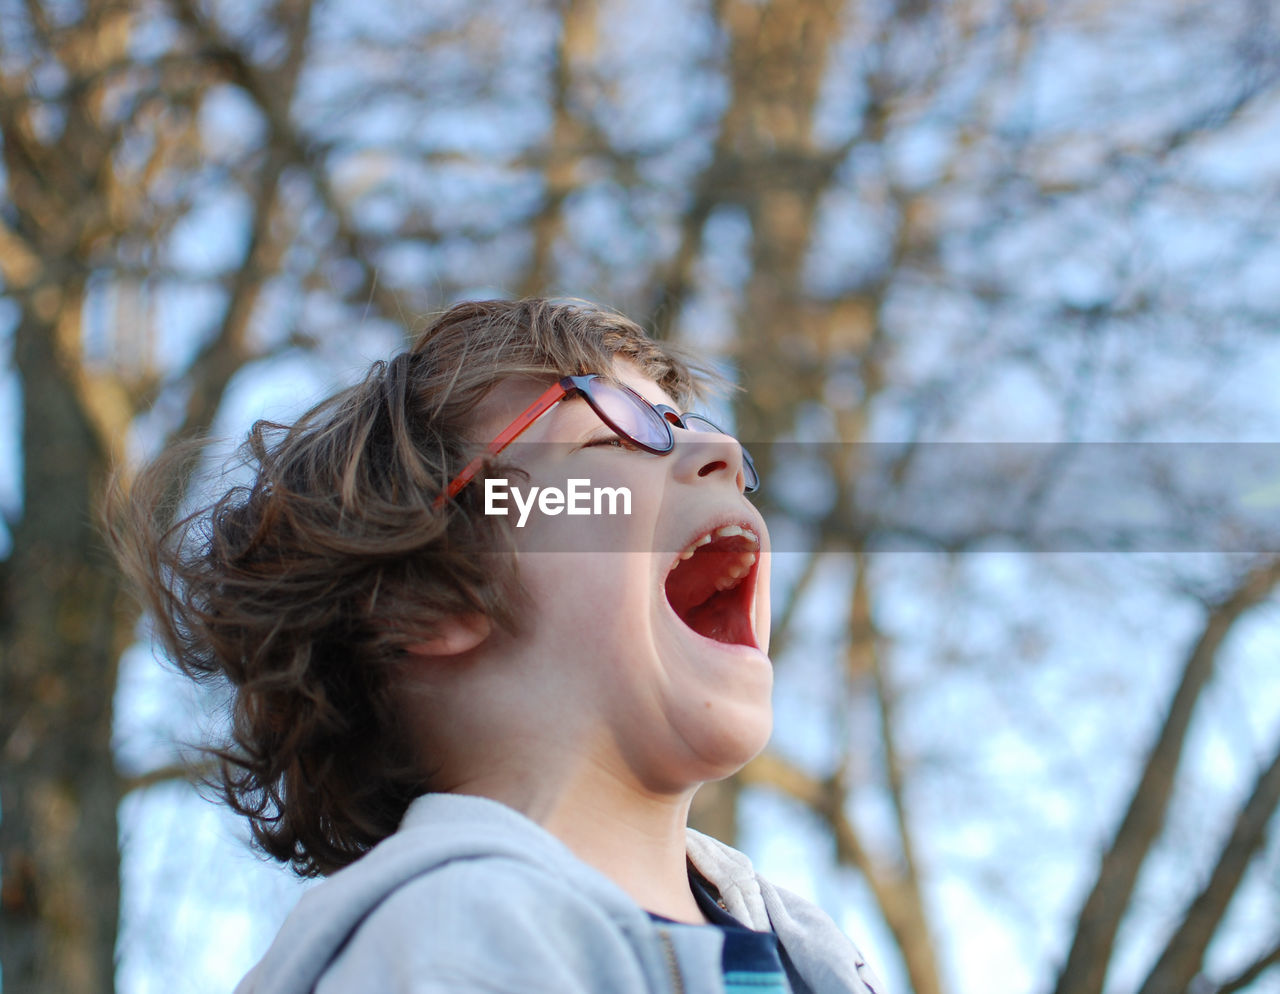 Close-Up Of Boy Screaming While Standing Against Bare Trees